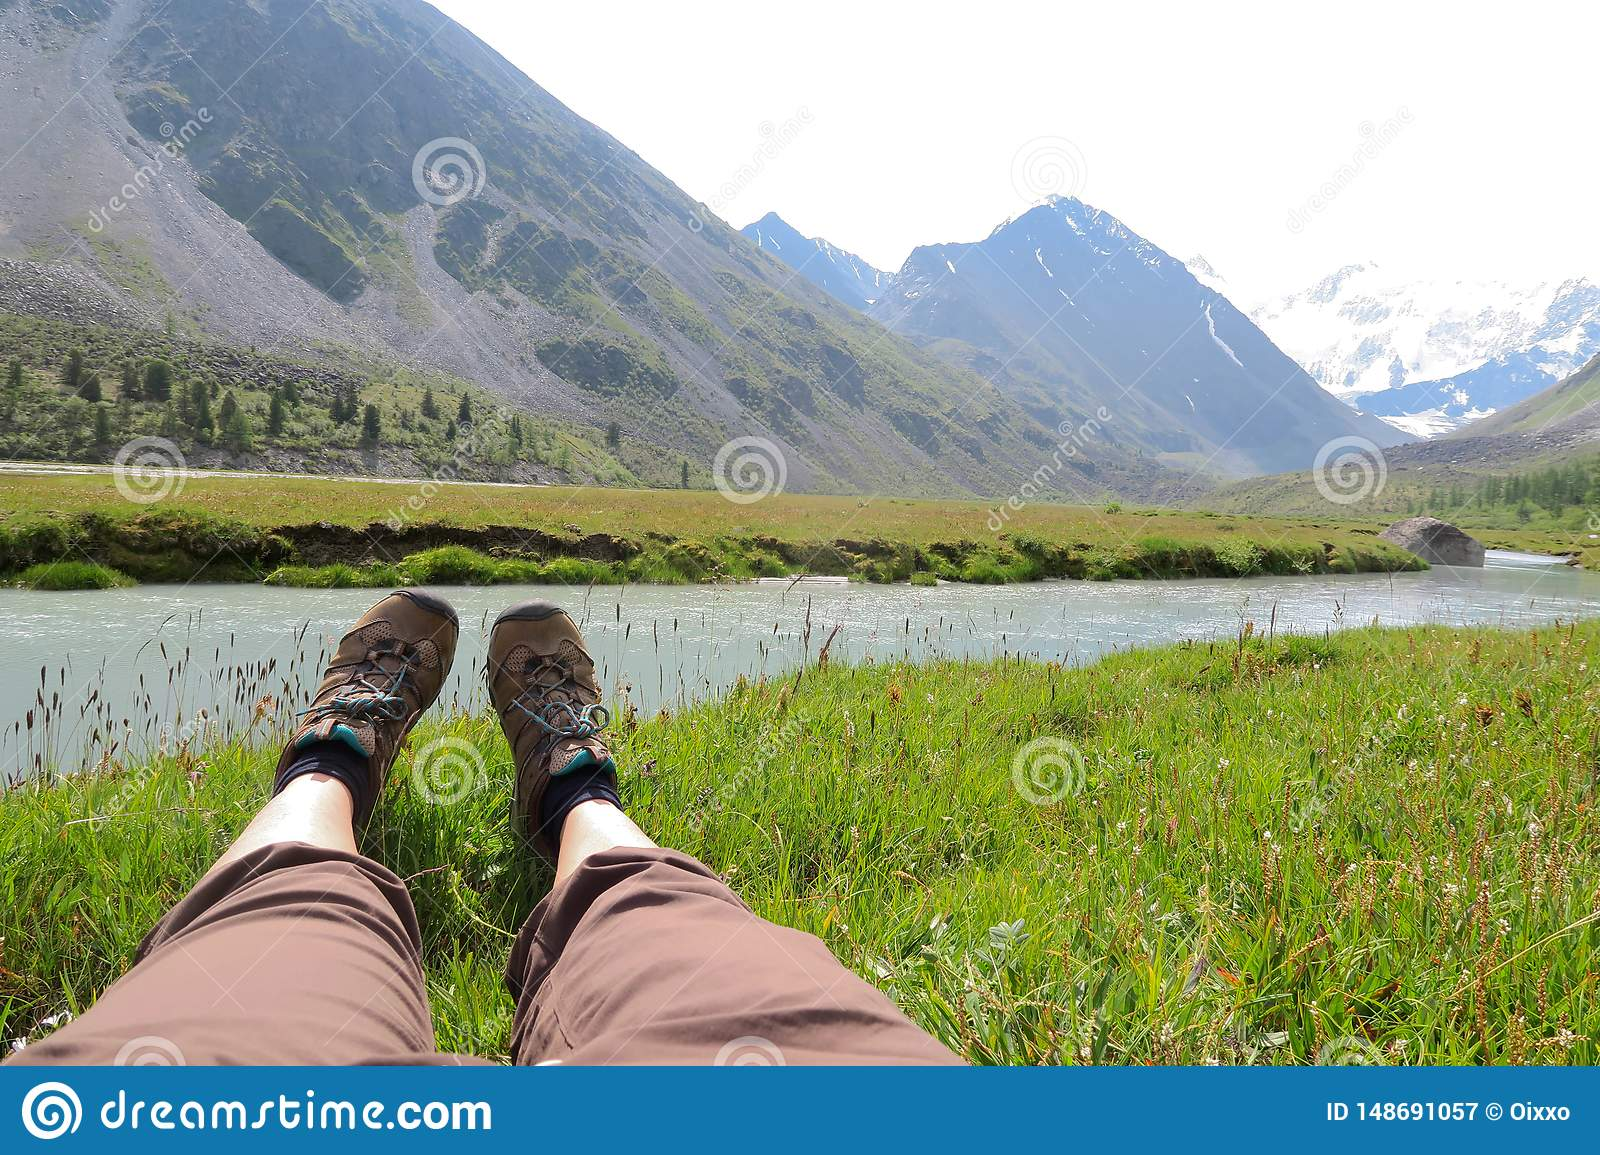 Female legs on the grass and mountains landscape on background